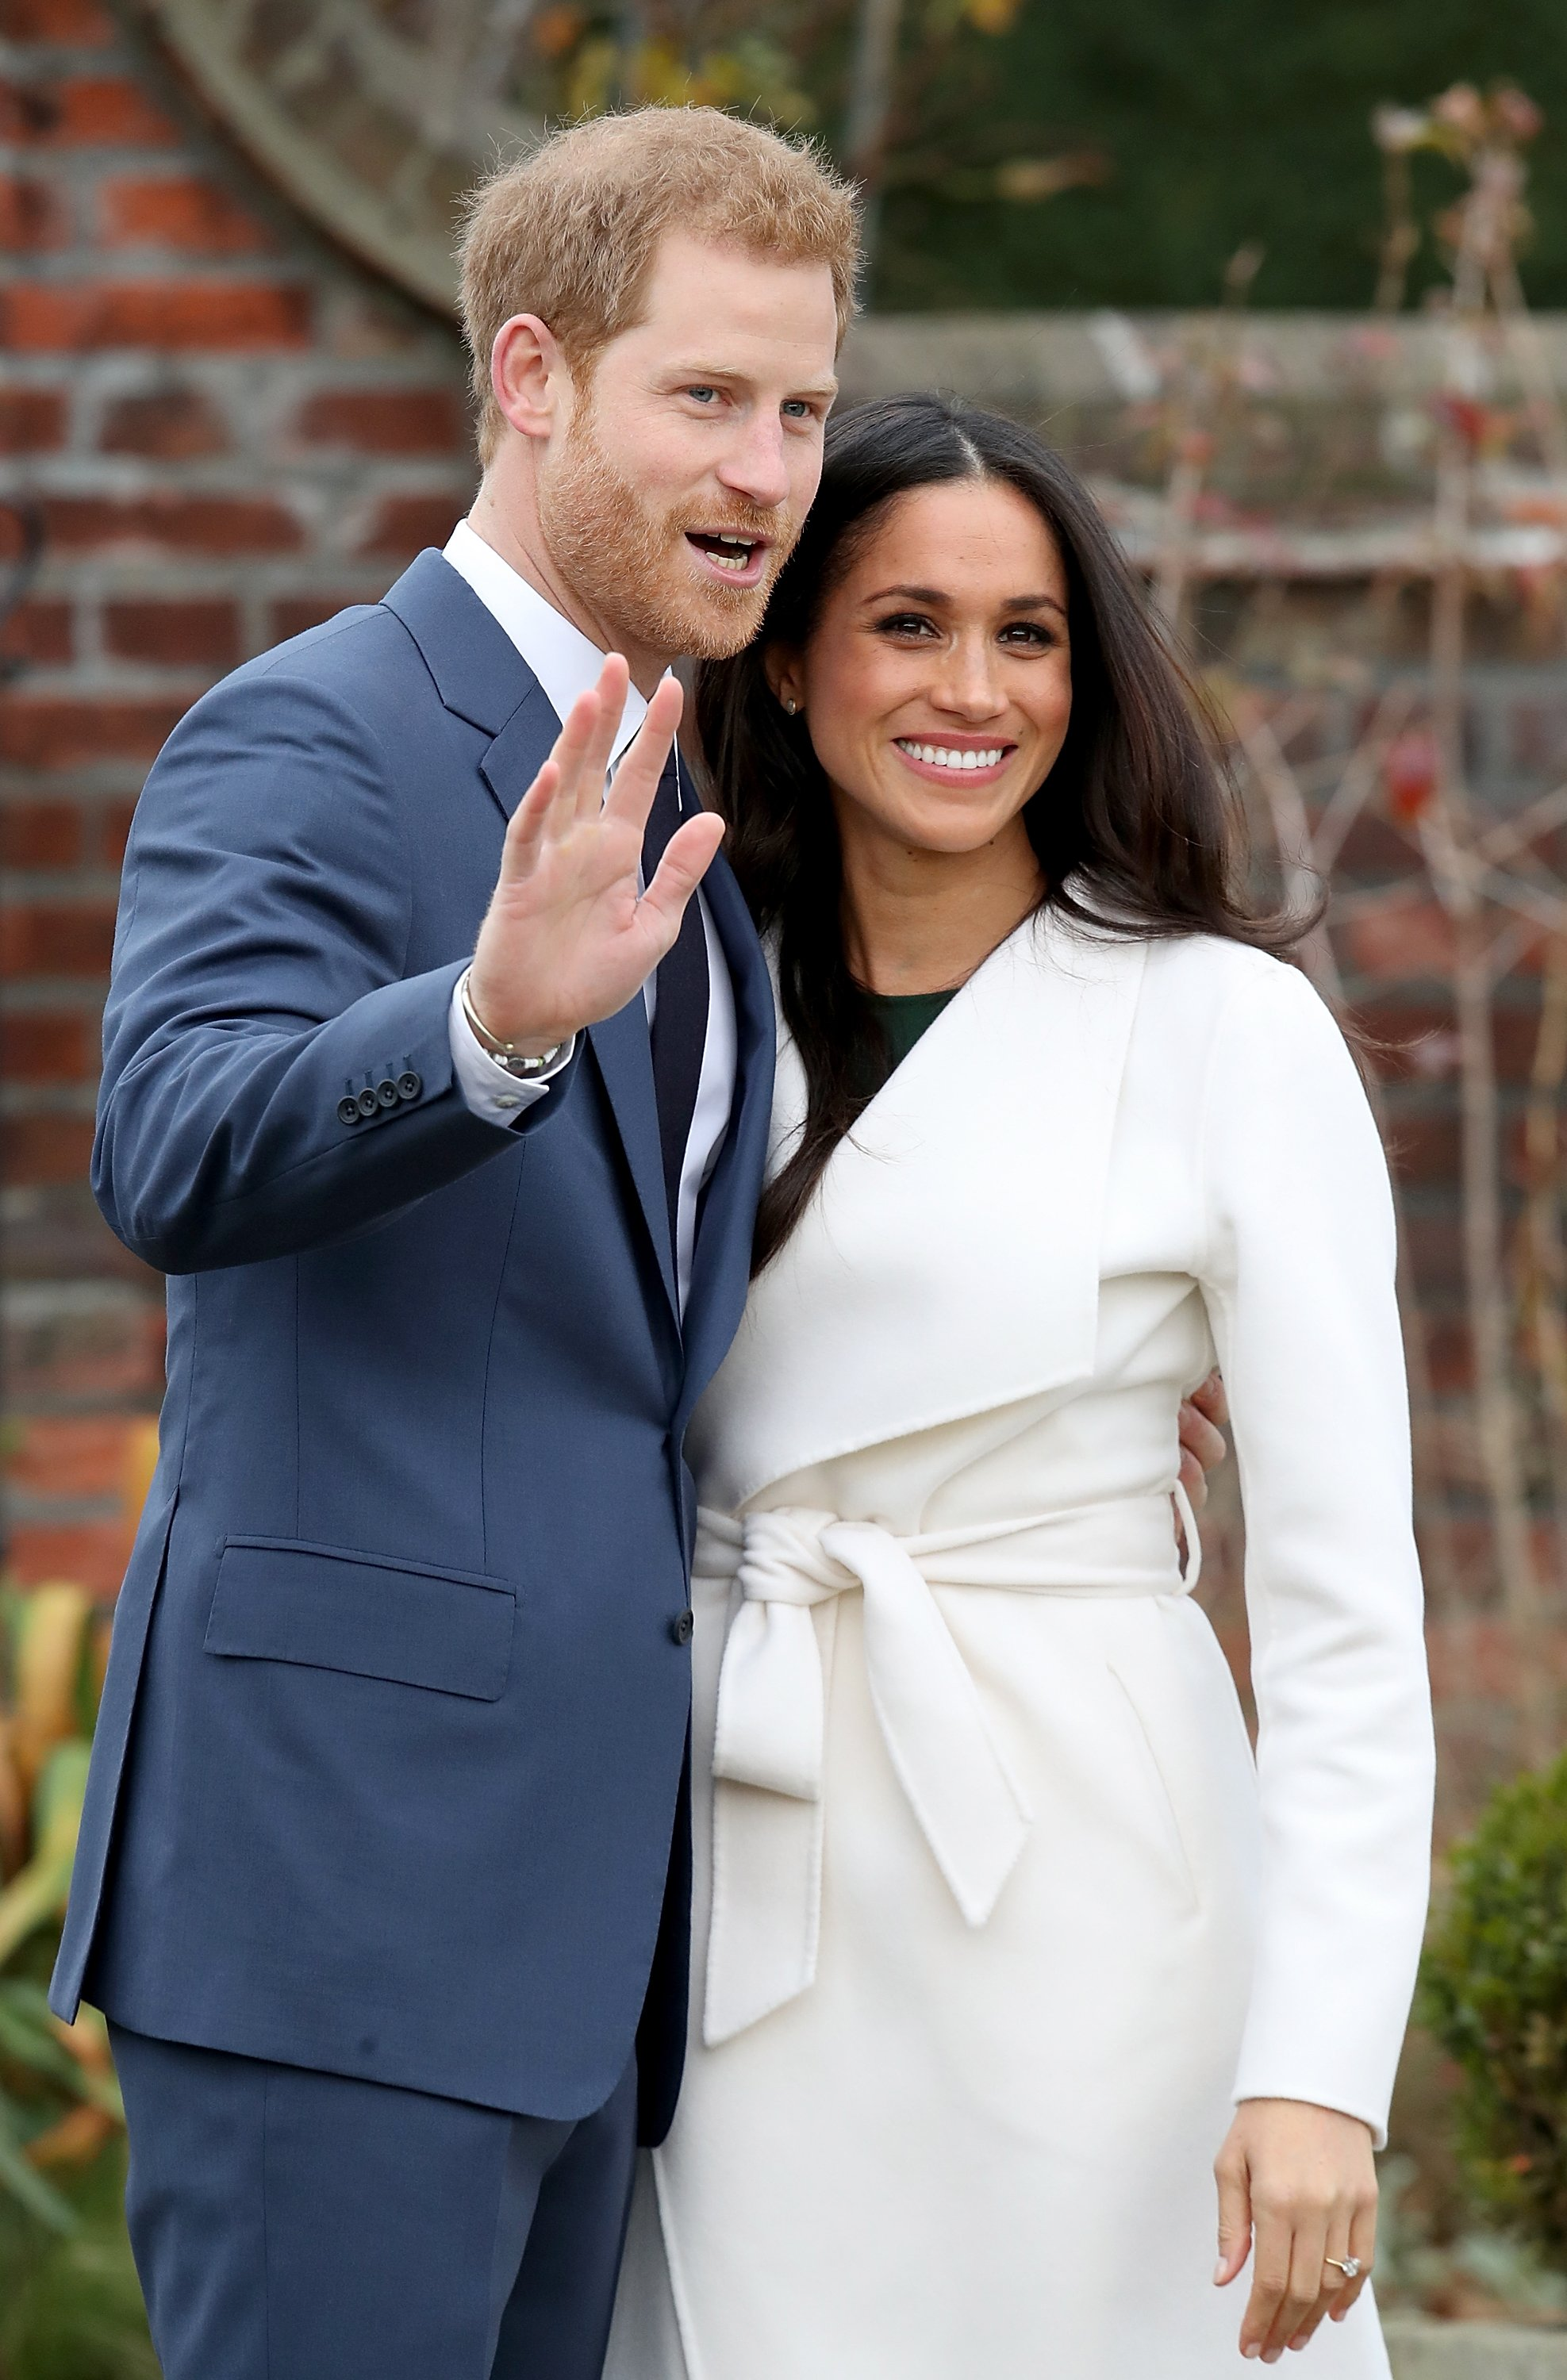 Prince Harry and Meghan Markle during their engagement announcement at Kensington Palace in London, 27 November, 2017. | Photo: Getty Images.